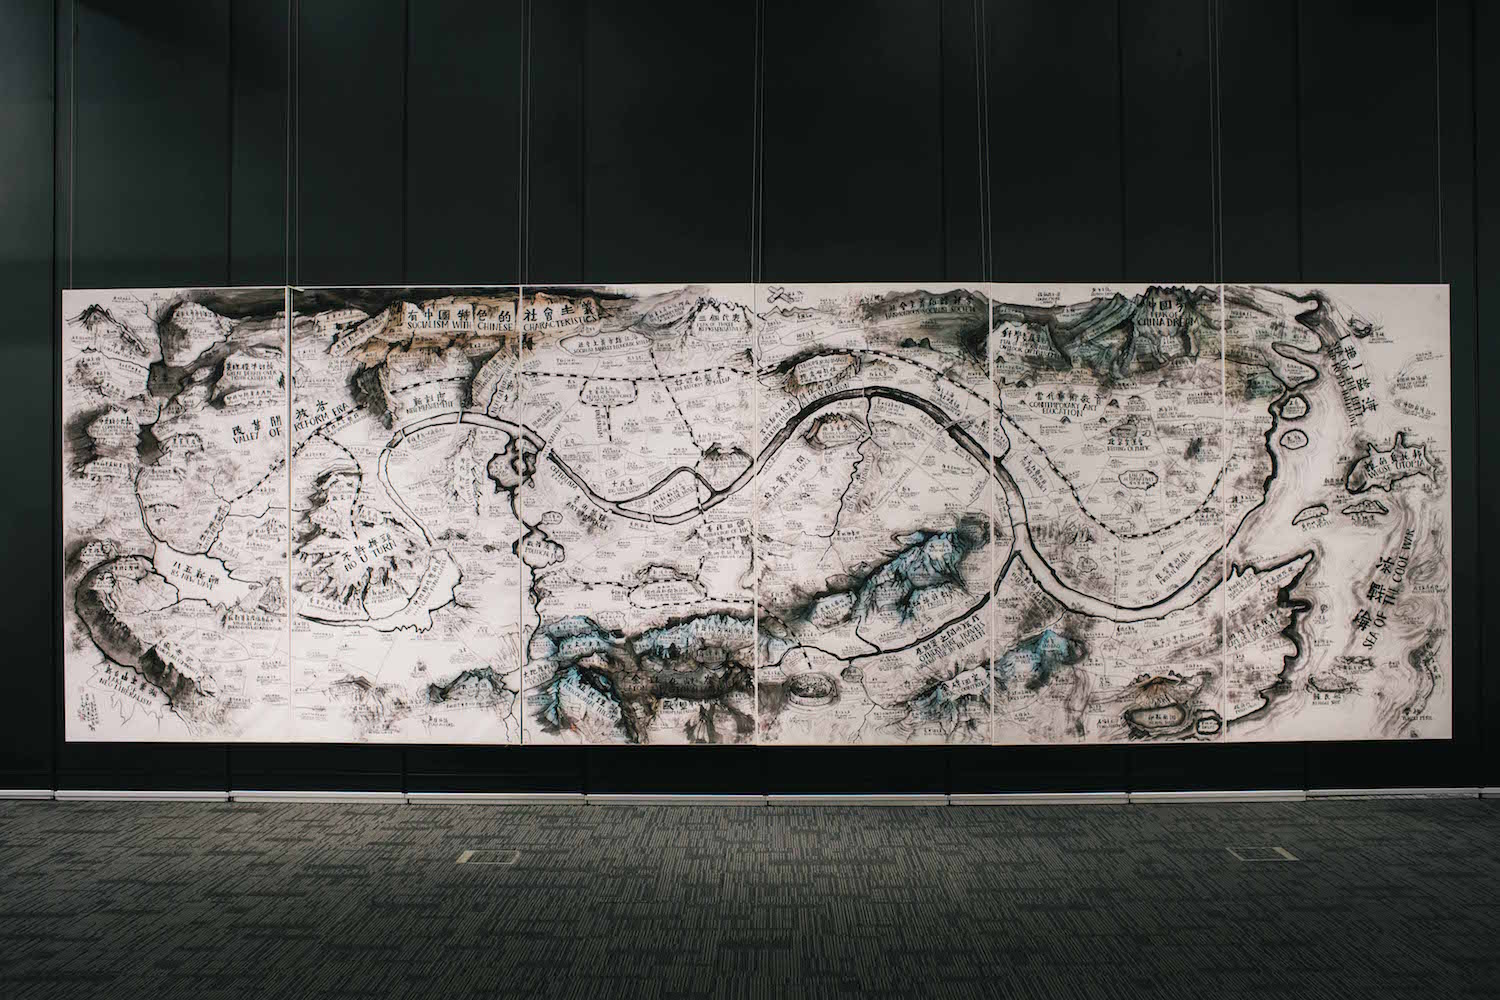 Installation view of Qiu Zhijie, 'Map of Art and China after 1989: Theatre of the World', 2017, colour print, 240 x 720cm. Image courtesy of Parkview Museum Singapore.